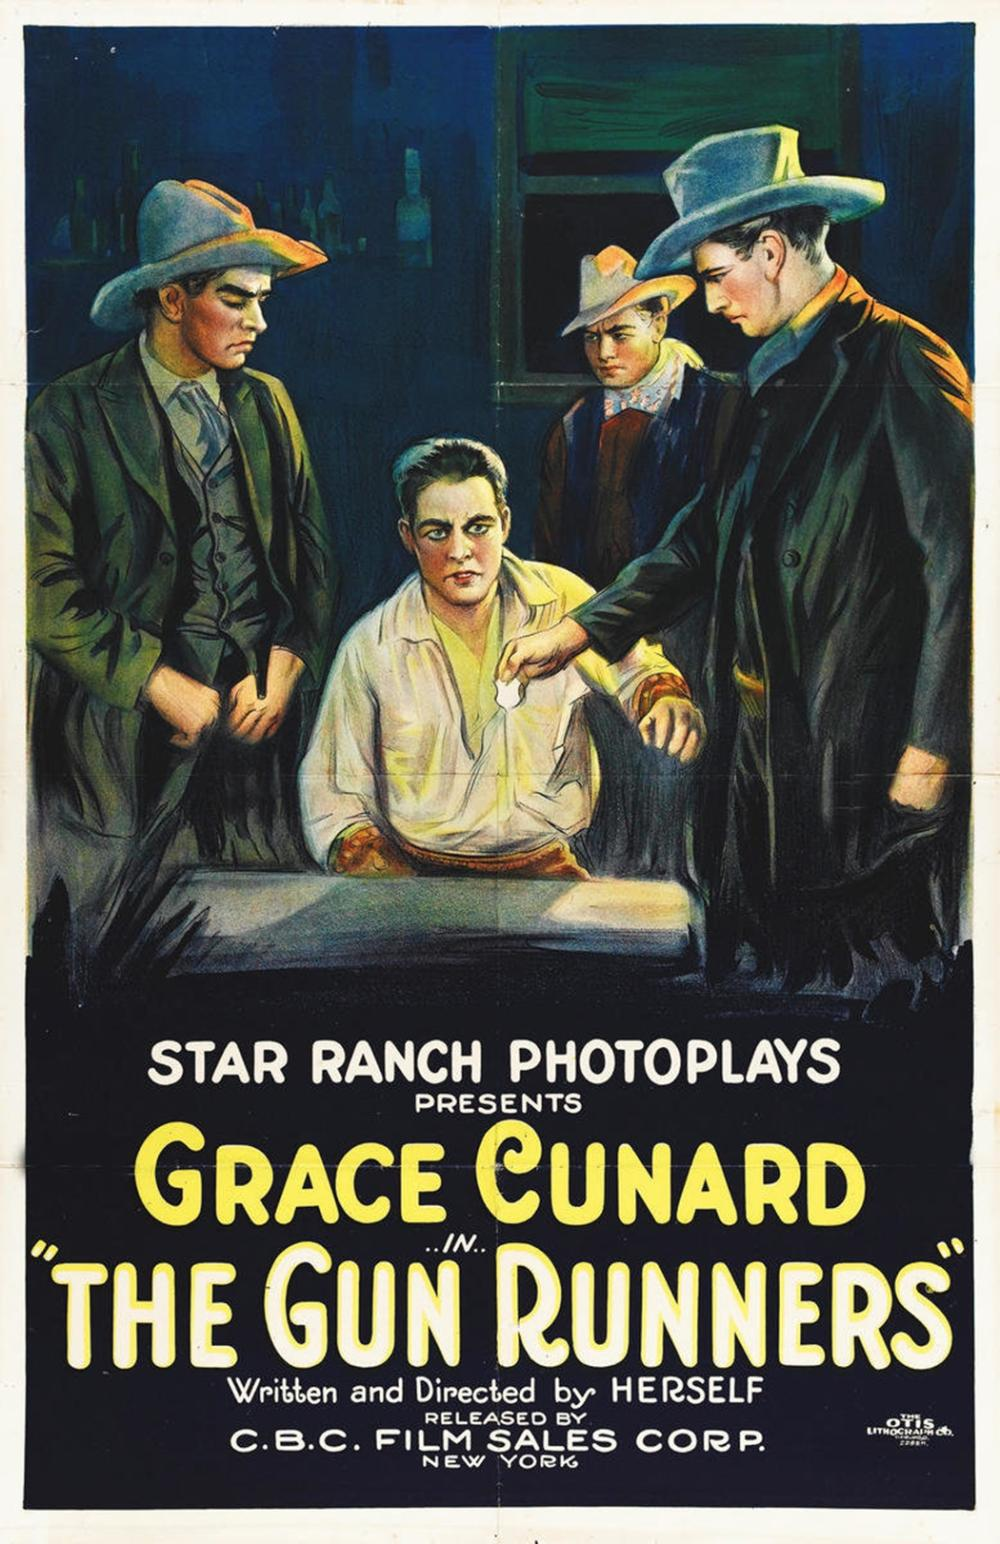 HOLLYWOOD PHOTO ARCHIVE GUN RUNNERS